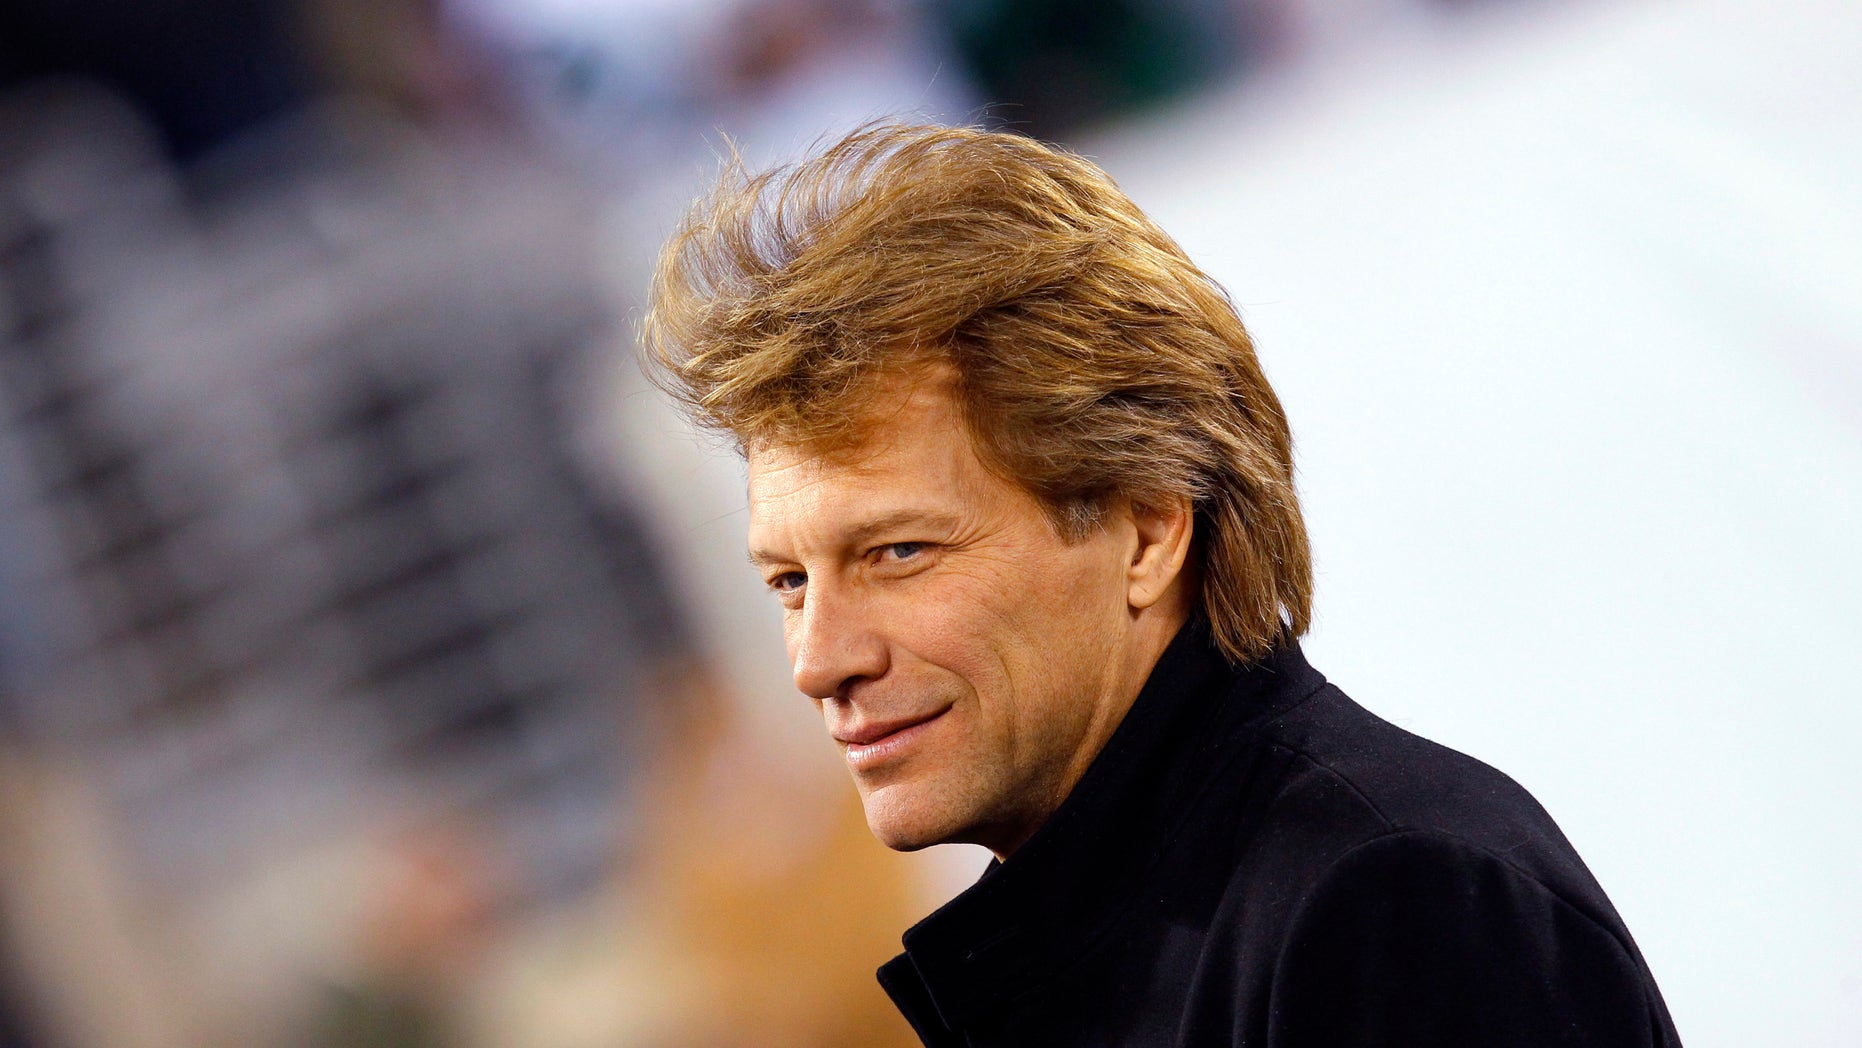 November 13, 2011. Musician Jon Bon Jovi walks on the field before the NFL football game between the New England Patriots and the New York Jets in East Rutherford, New Jersey.